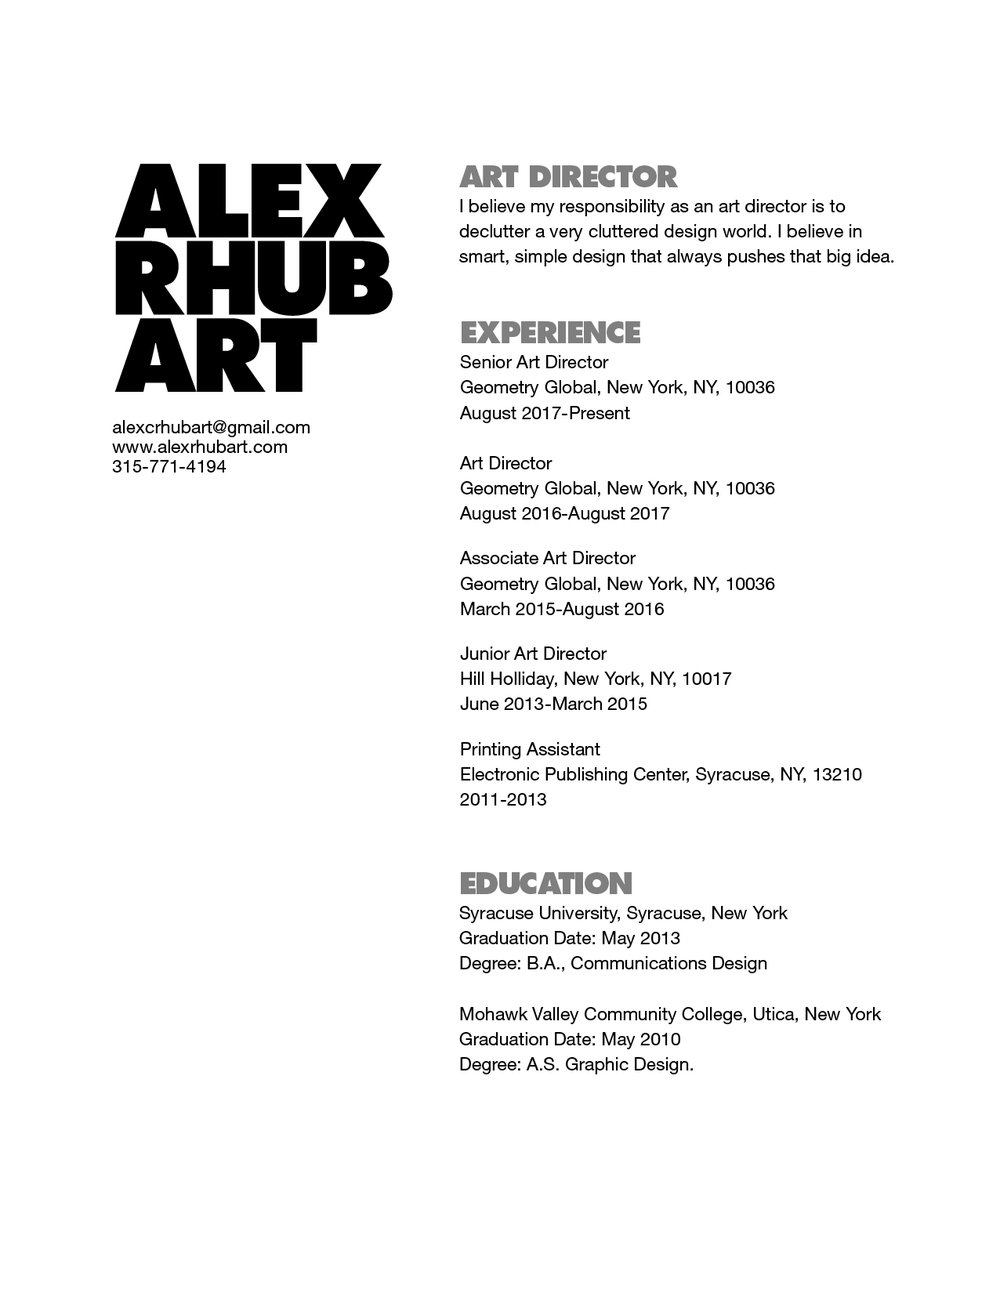 resume alex rhubart